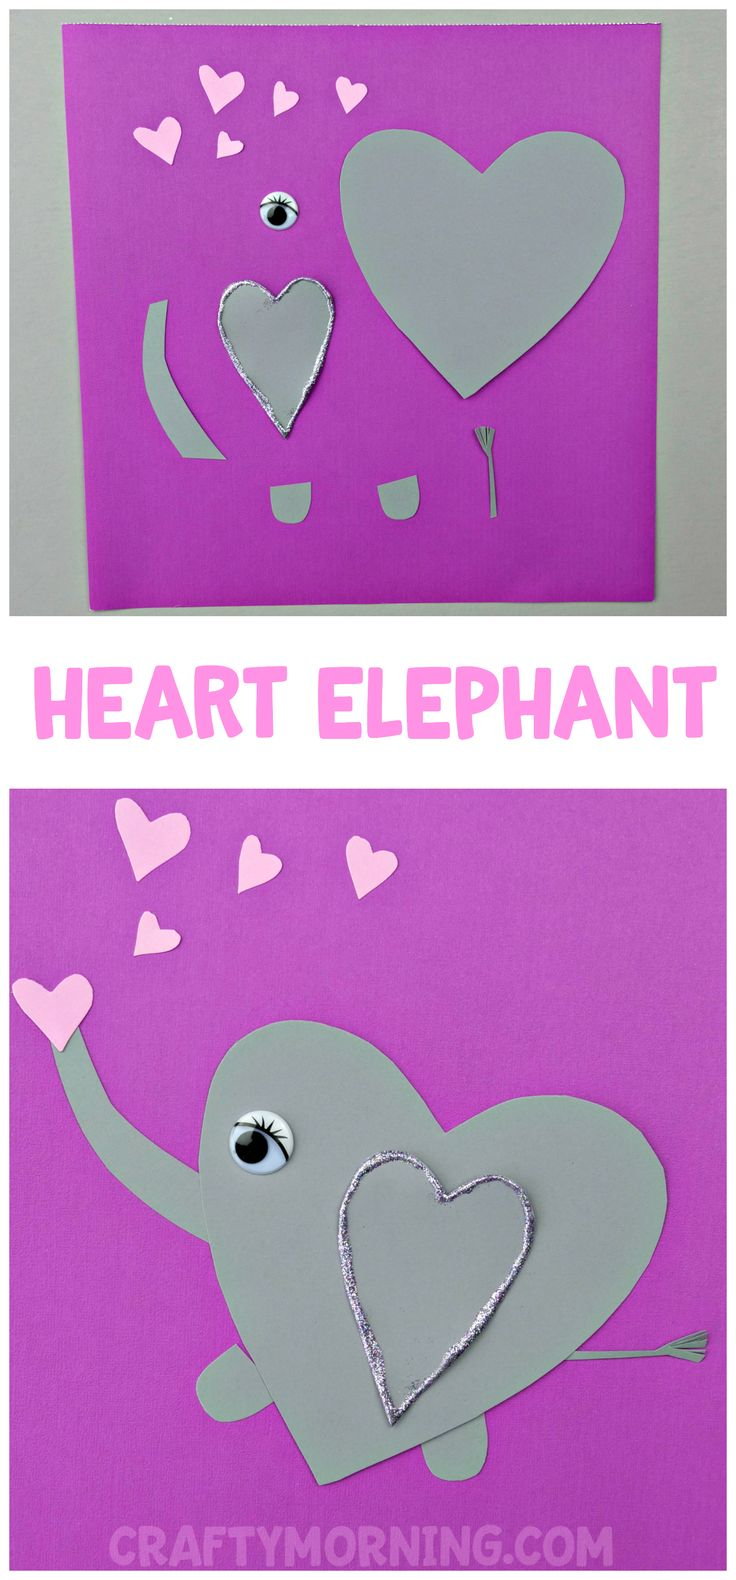 a252817bae0fdf0d089a4302085ca281 - Heart Elephant Valentine Craft - Adorable heart shape animal art project for the...